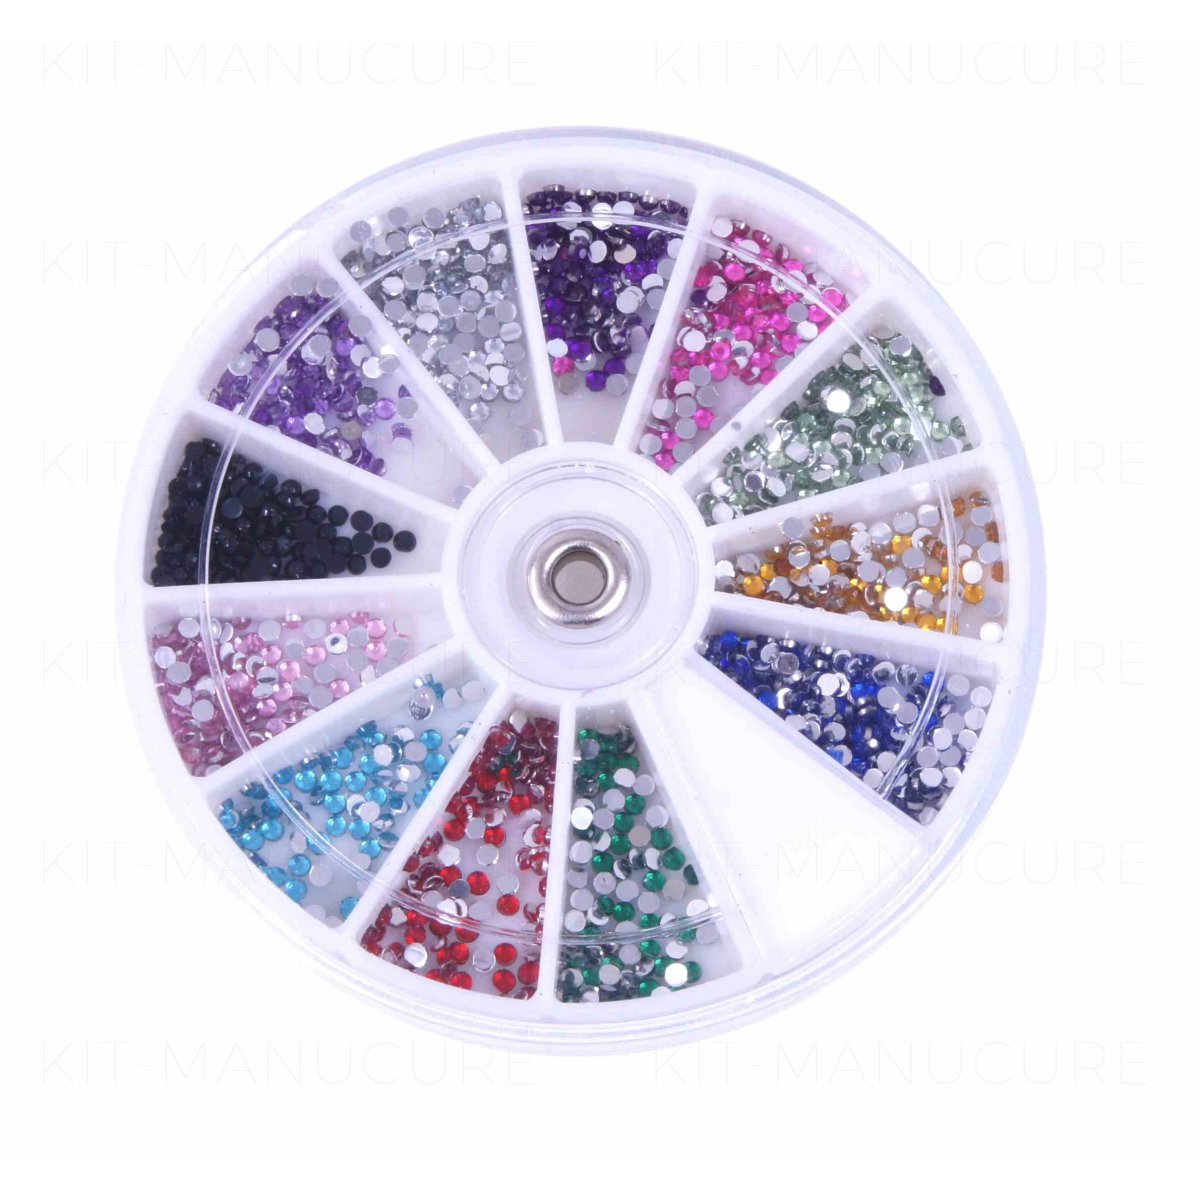 https://www.kit-manucure.com/124-thickbox_default/roue-de-strass-colorés.jpg